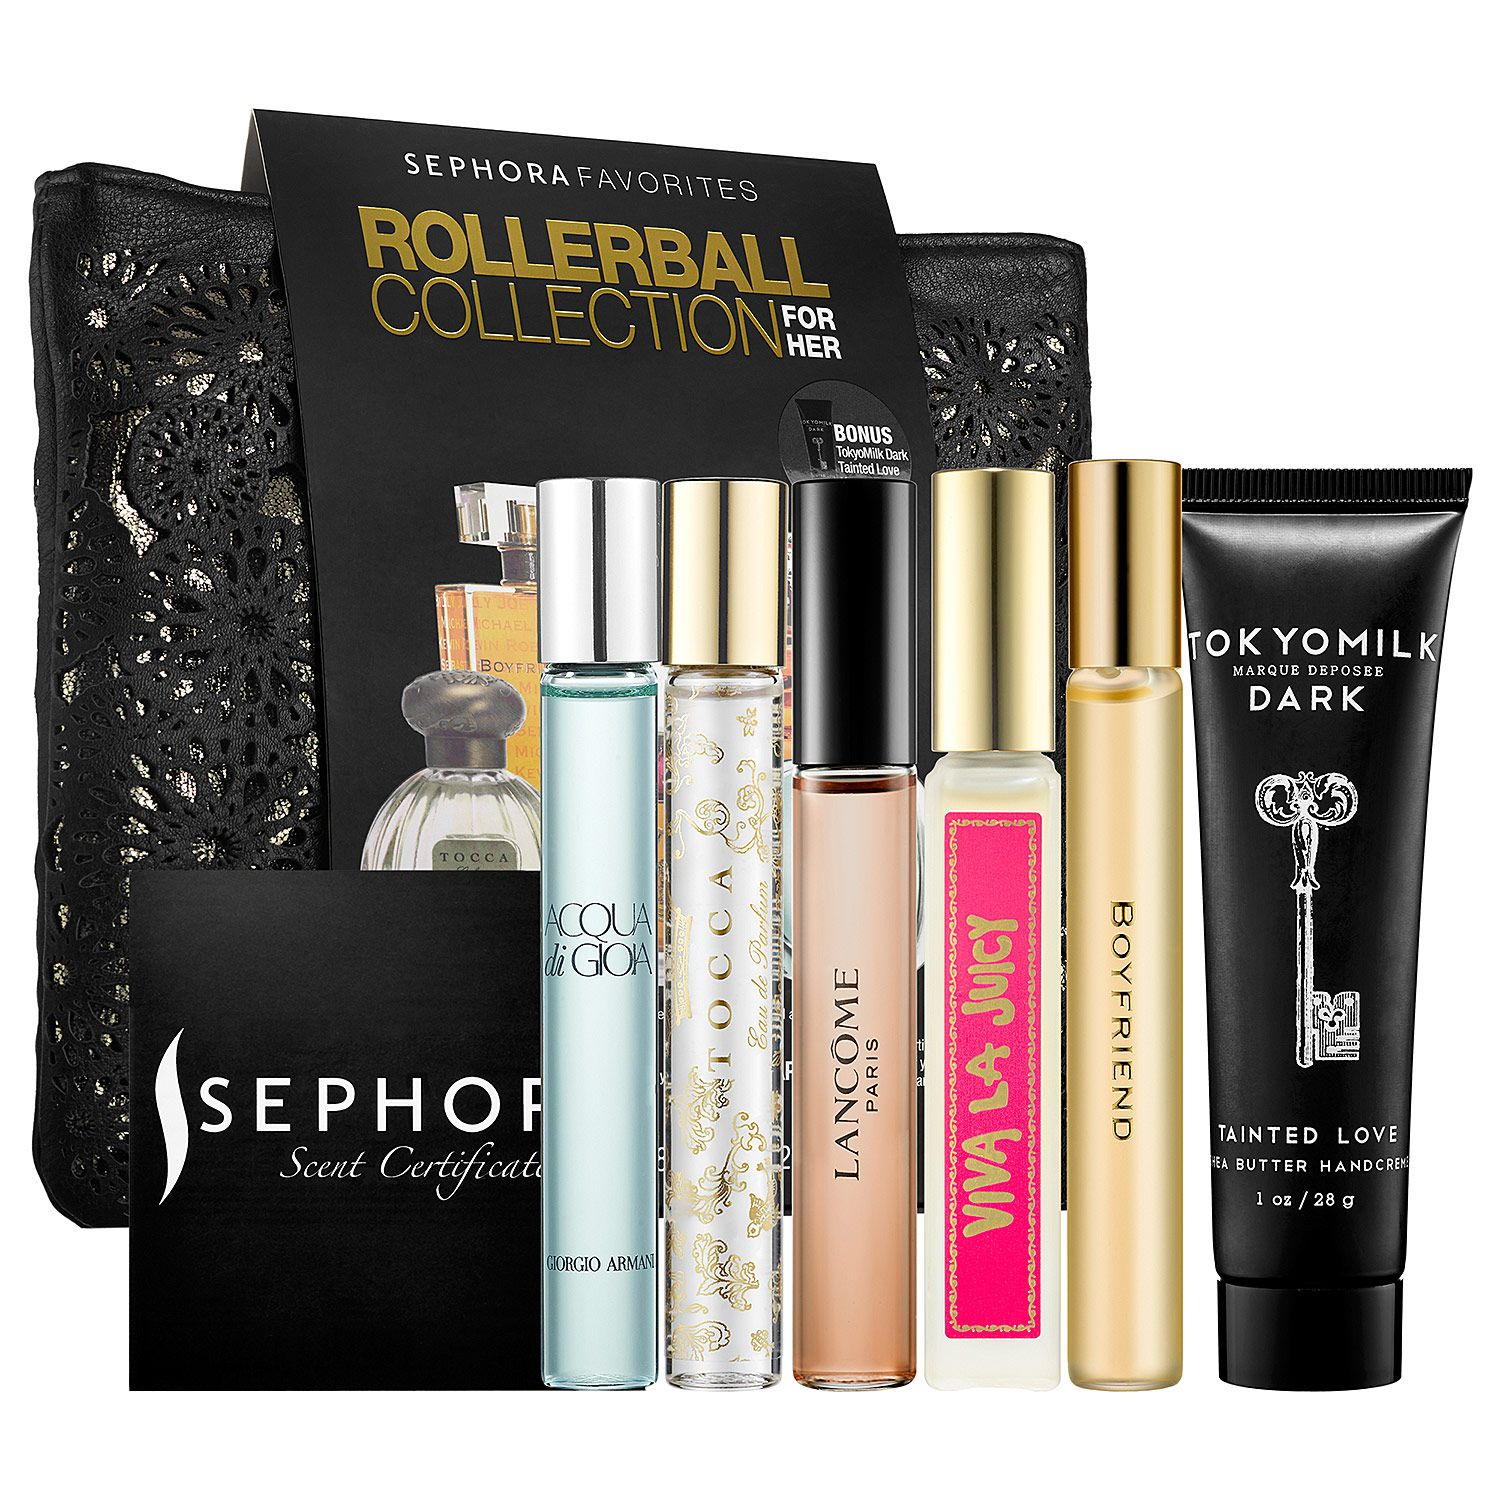 Sephora Favorites Rollerball Collection for Her Sephora